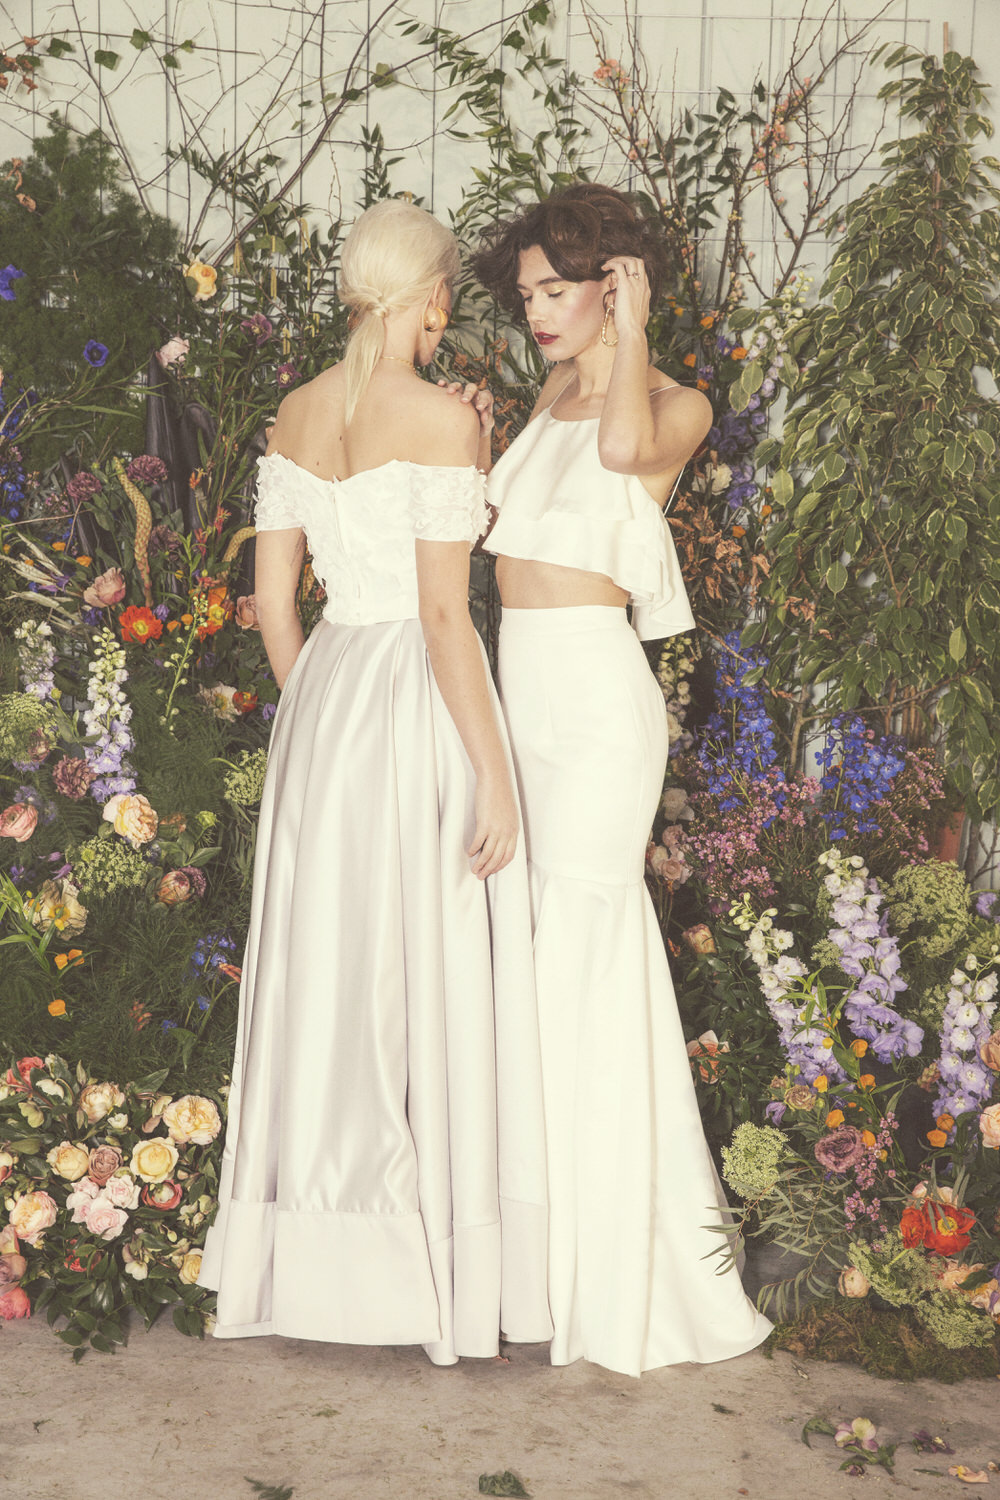 Ready To Wear Bridal Collection With Separates Rasbery Pavlova,Blush Pink Ball Gown Wedding Dress